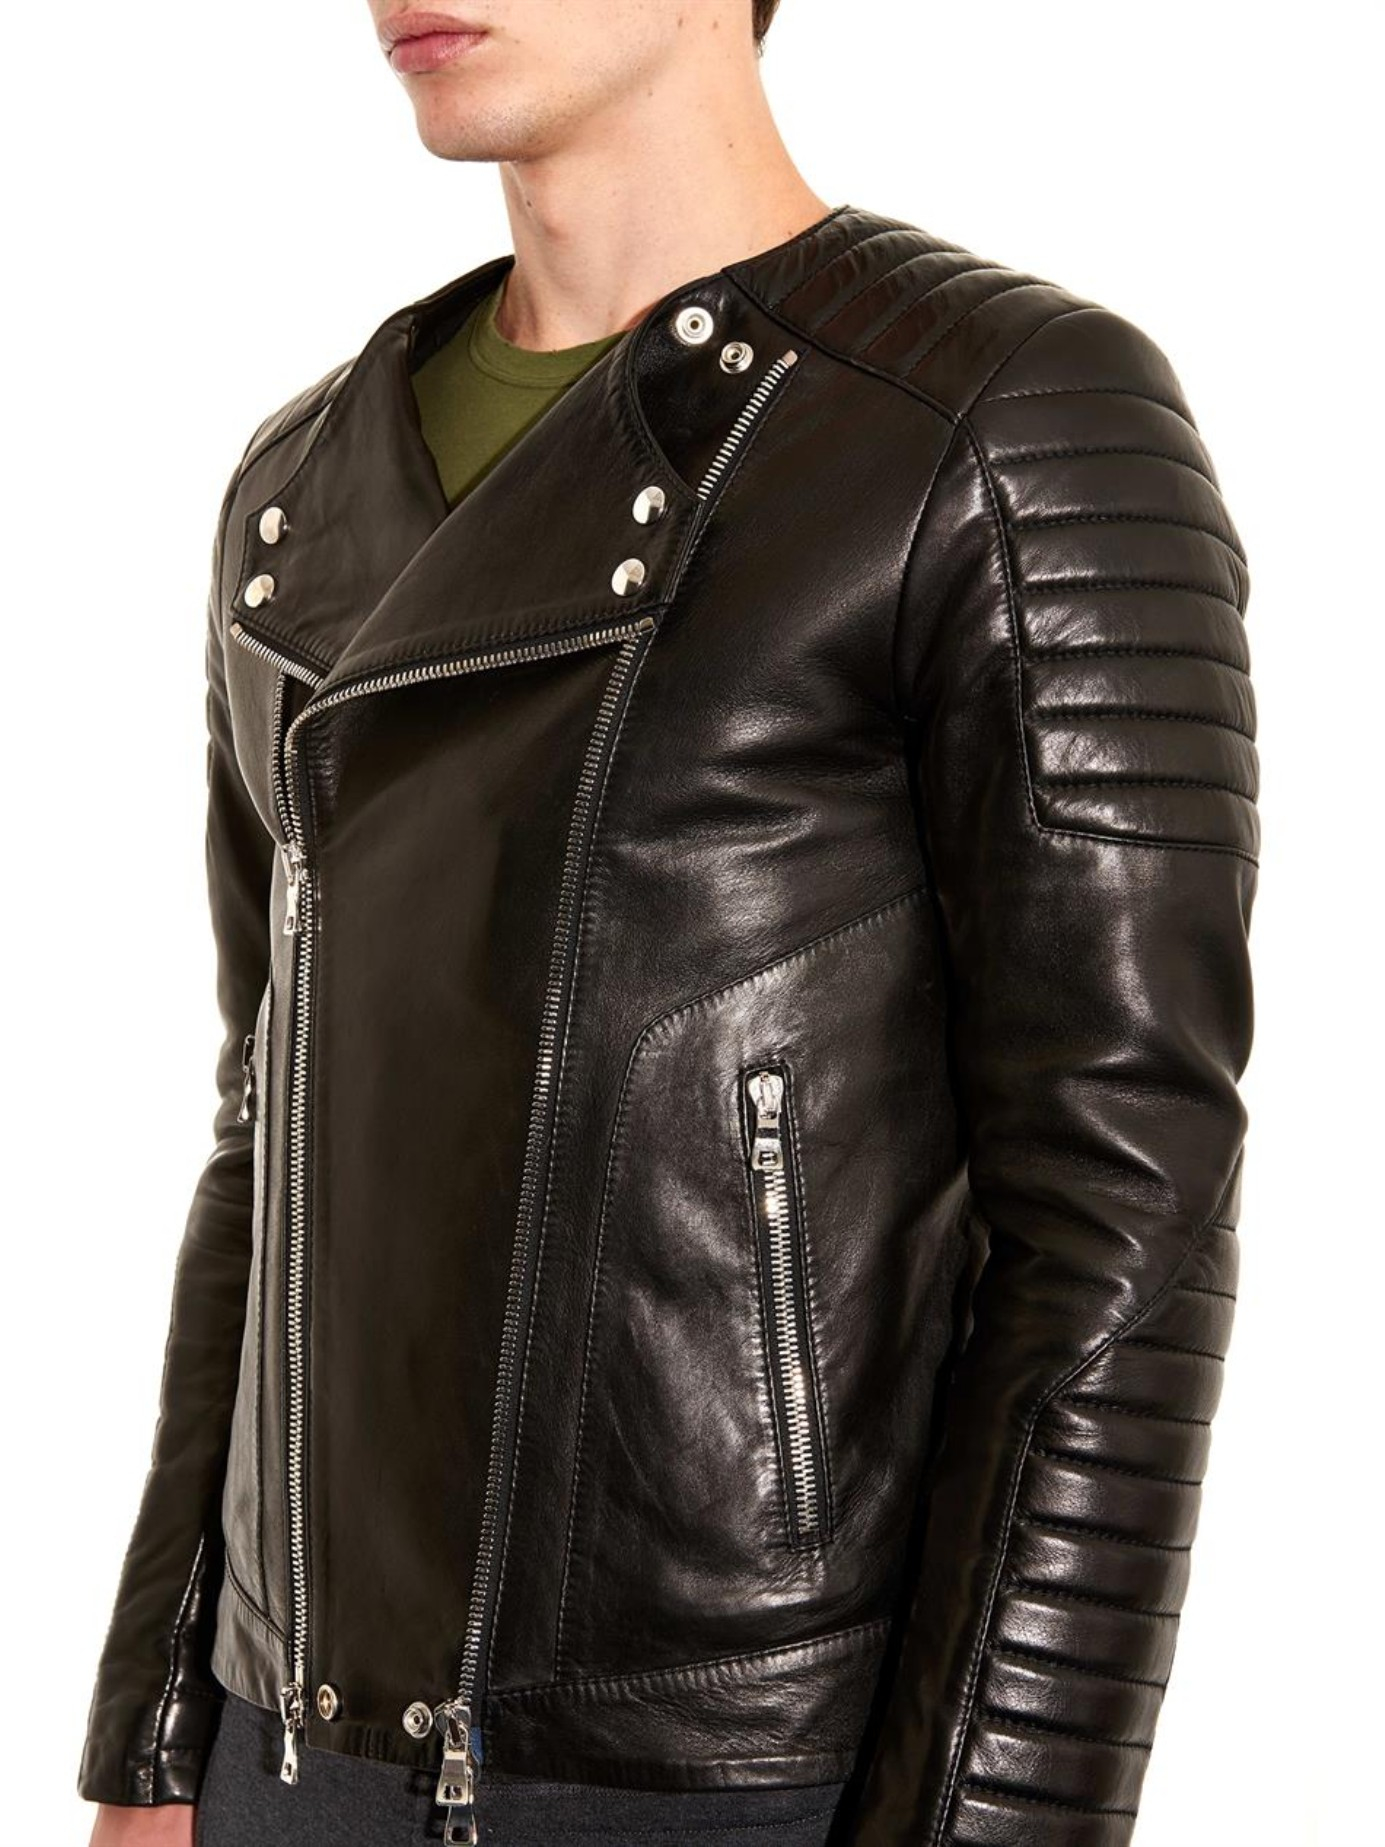 Balmain Leather Jacket | Balmain Style Leather Jacket | Balmain Paris Jeans